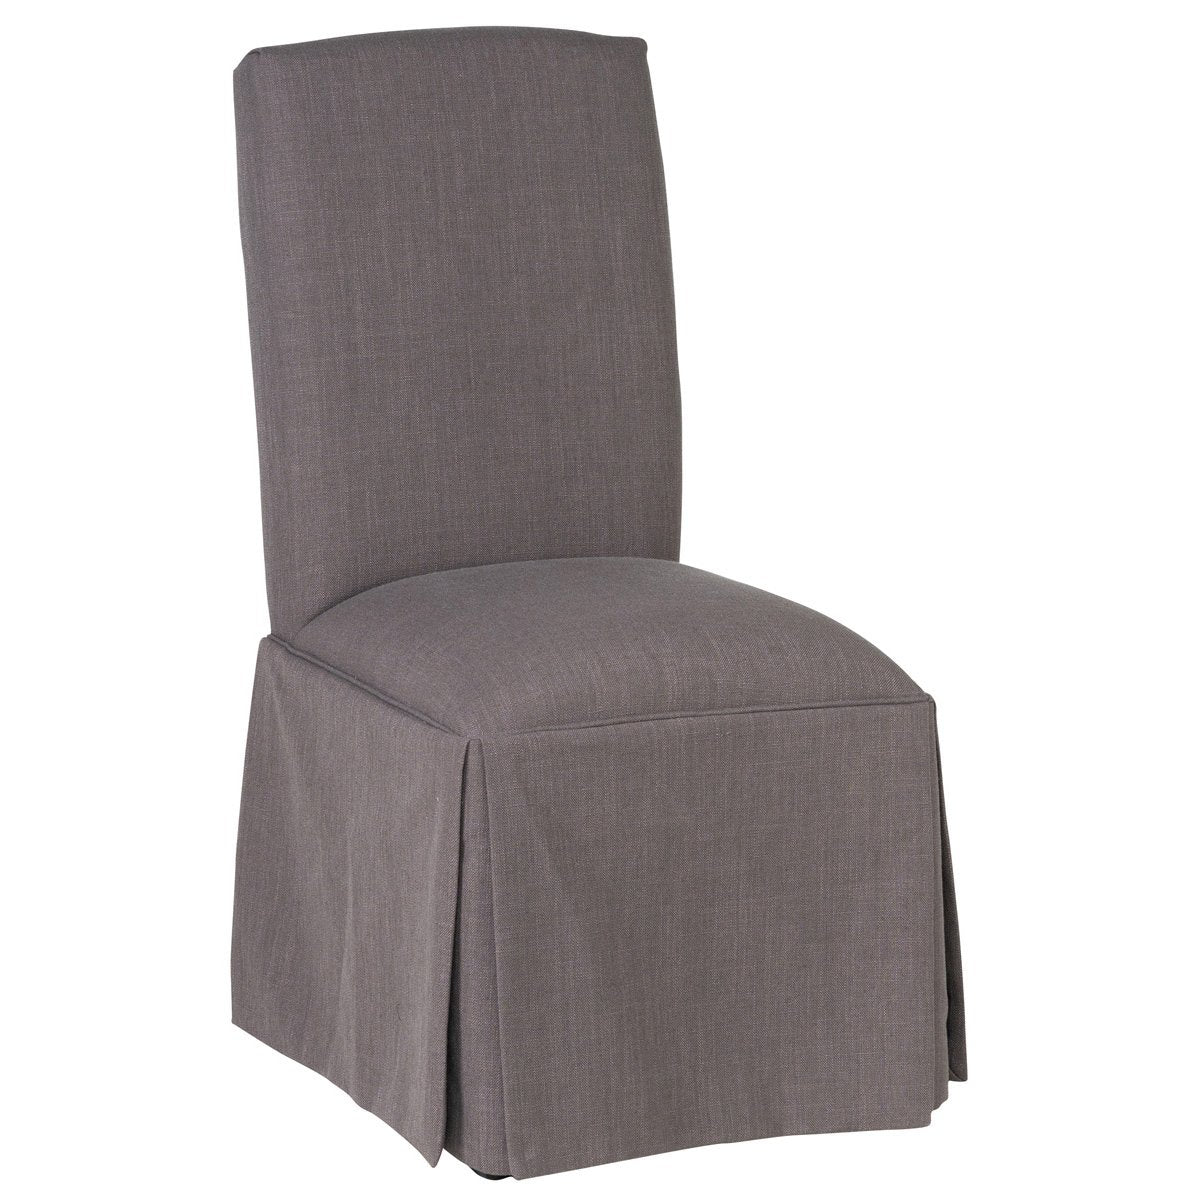 Adele Dining Chair Dark Olive